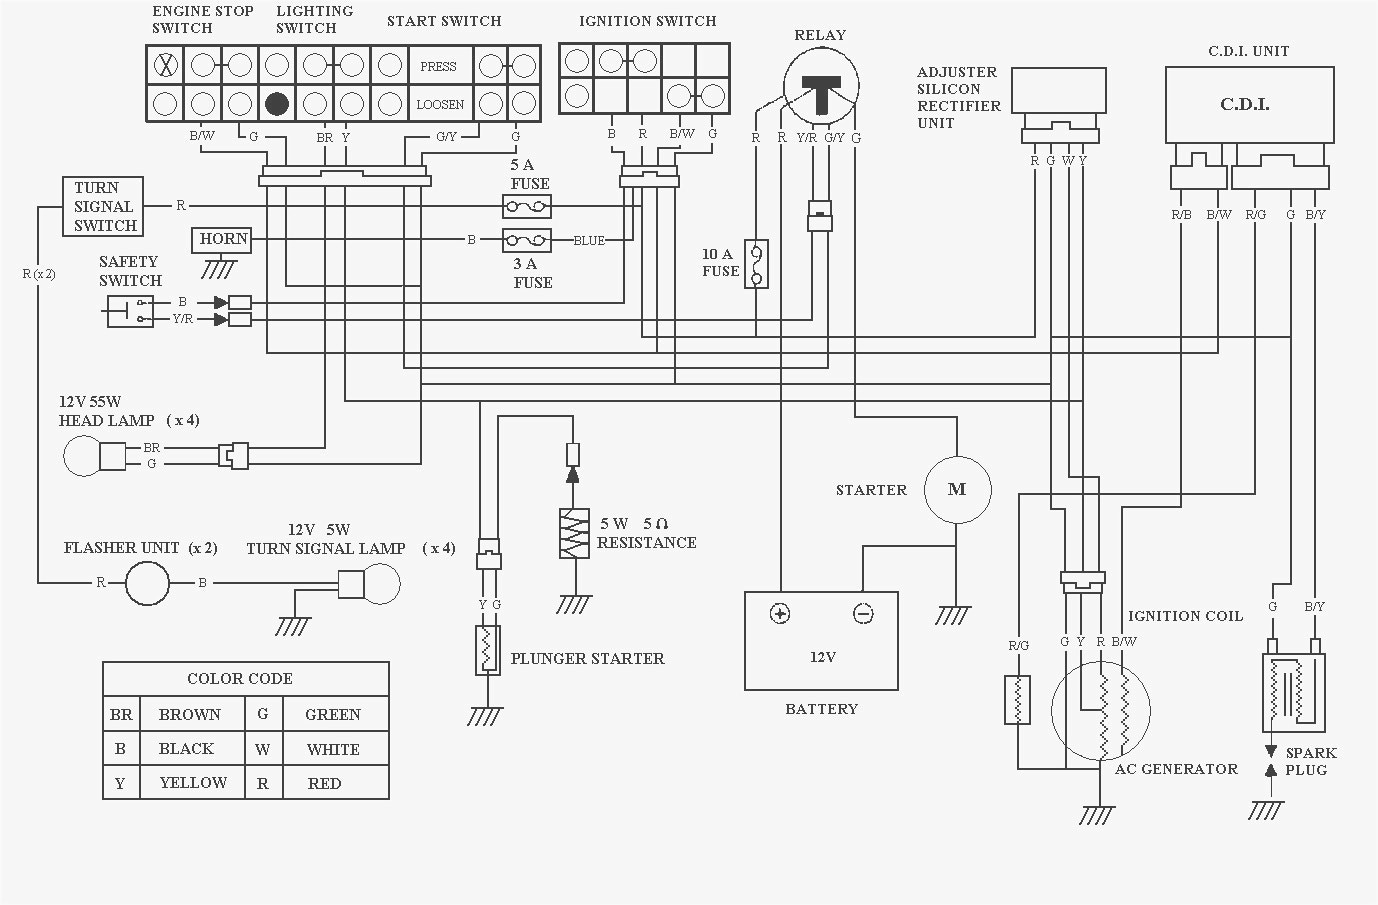 12 volt relay wiring diagrams as well 12 volt relay wiring diagrams